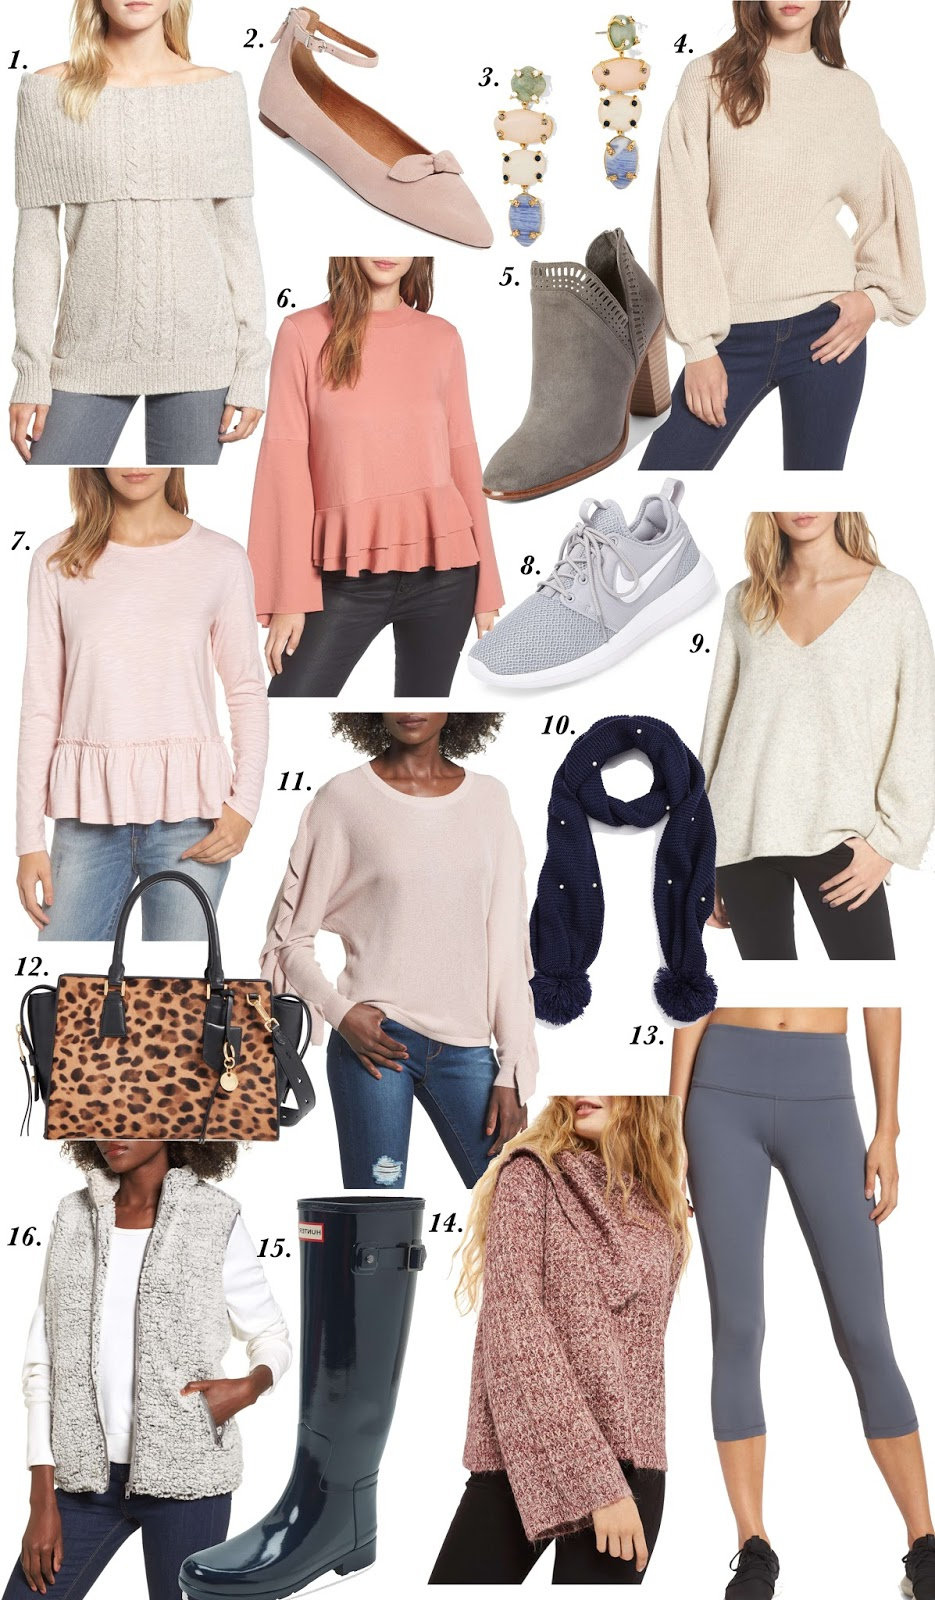 Nordstrom Half Yearly Sale - Something Delightful Blog